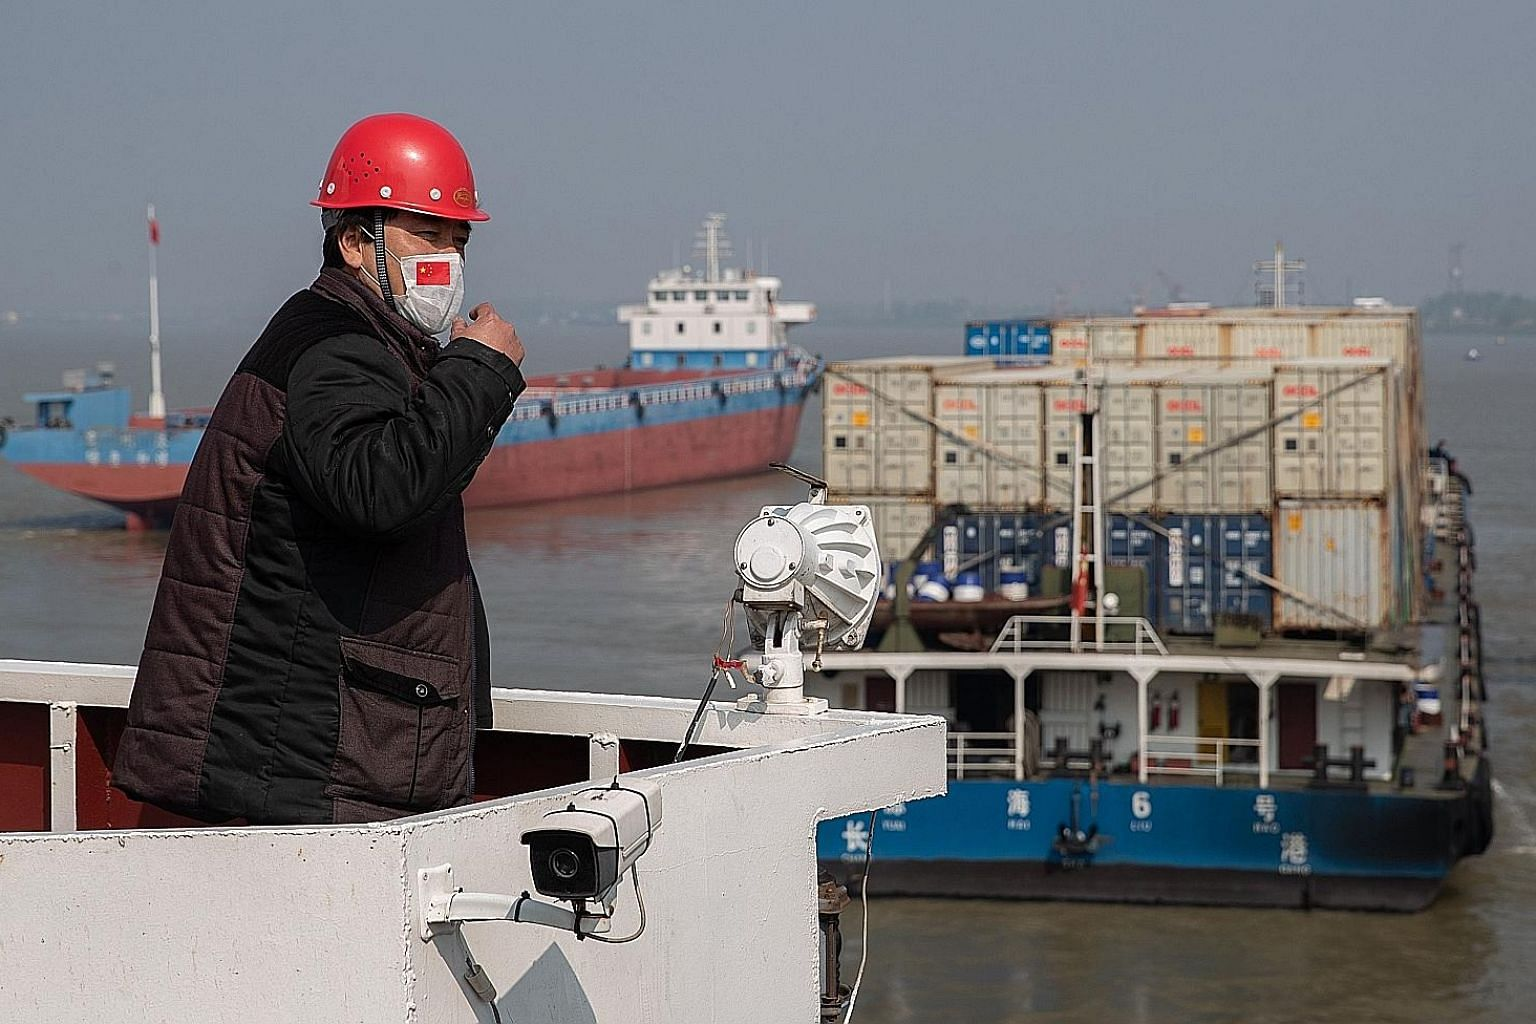 Container ships at the port of Wuhan. China is the 12th country to sign a pact launched by Singapore and New Zealand to uphold trade connections during the pandemic. PHOTO: AGENCE FRANCE-PRESSE